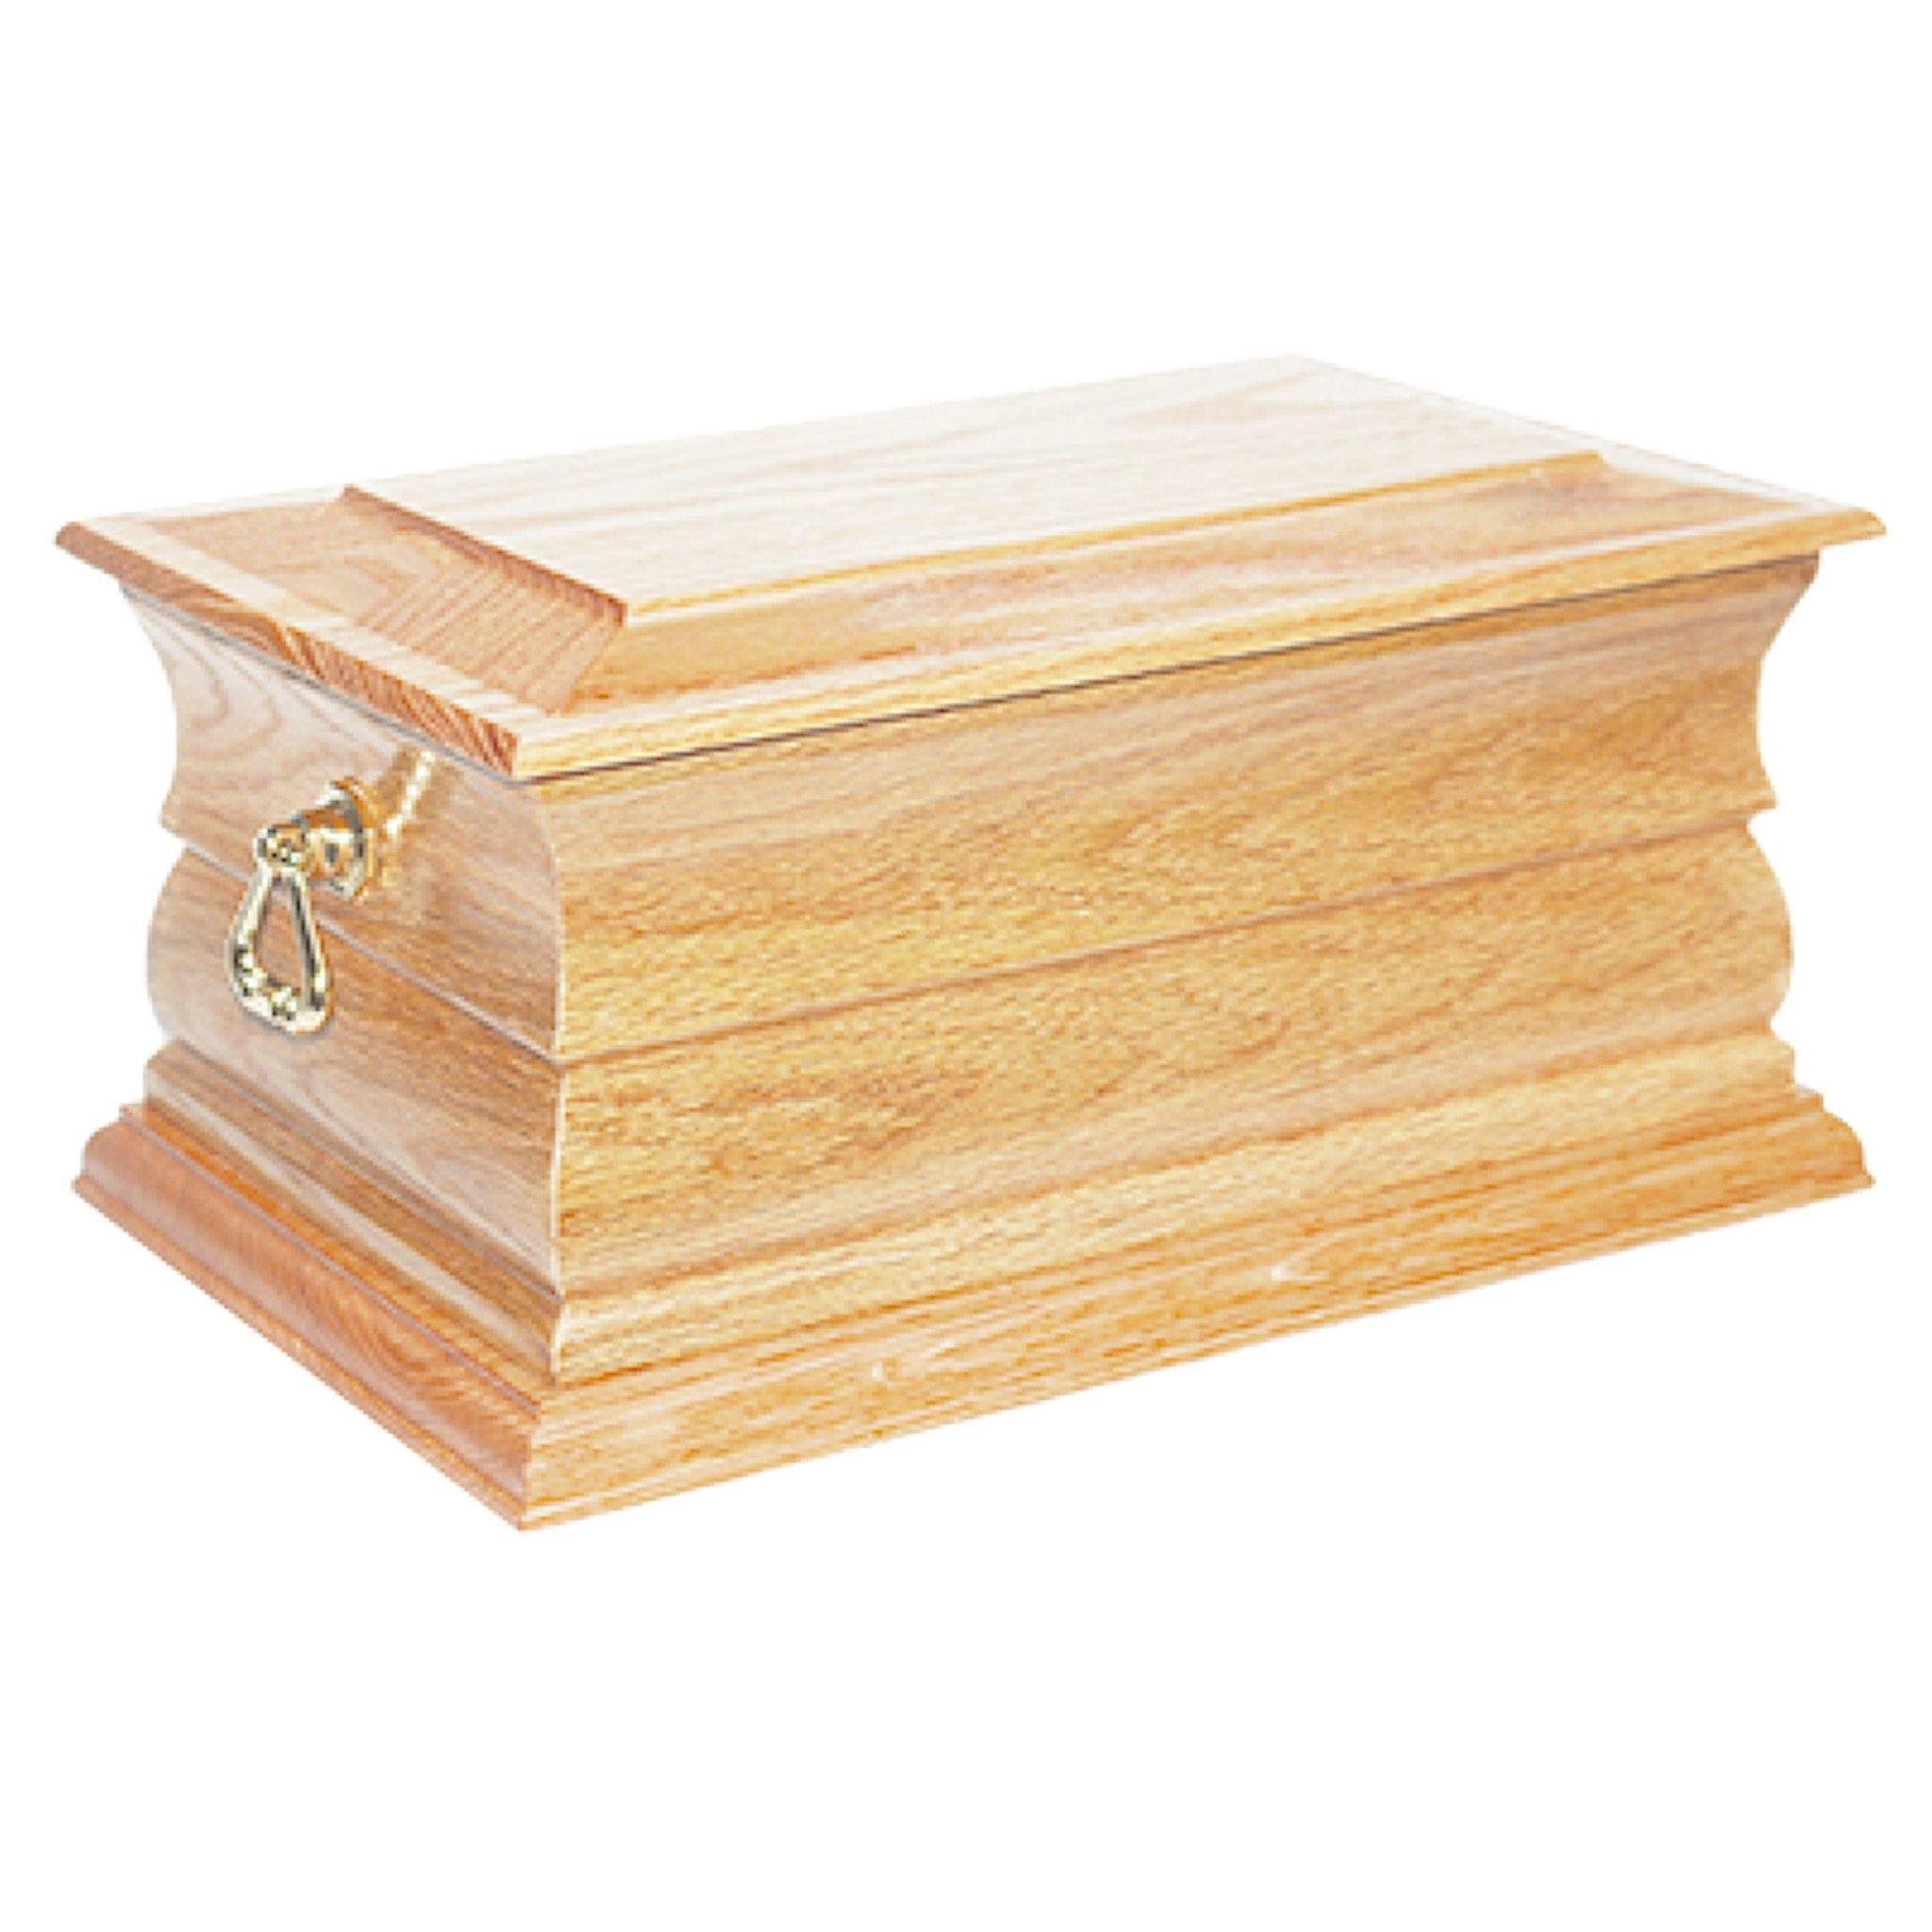 Newquay Solid Oak Cremation Ashes Casket - Urns UK